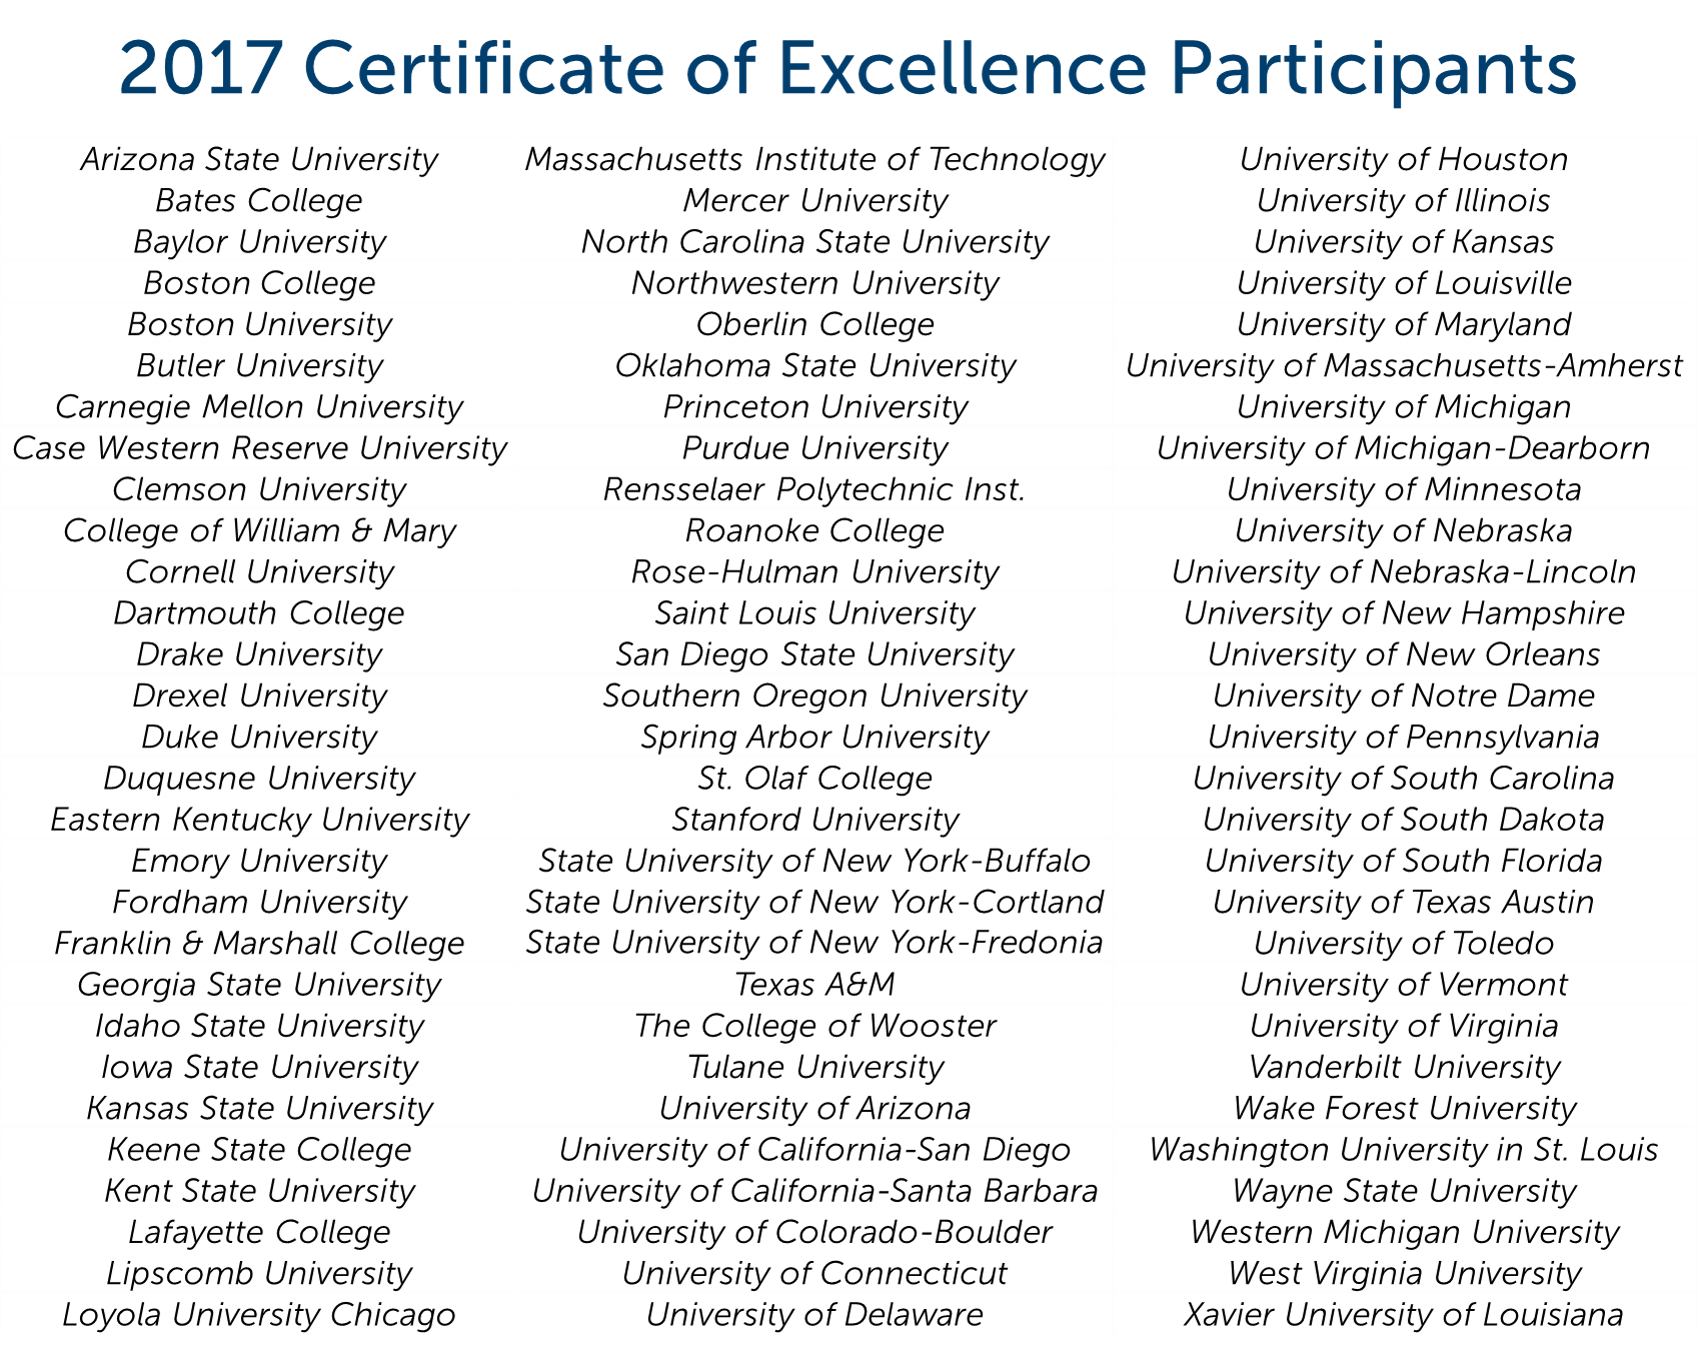 The Royal Society Of Chemistry Certificate Of Excellence Returns For